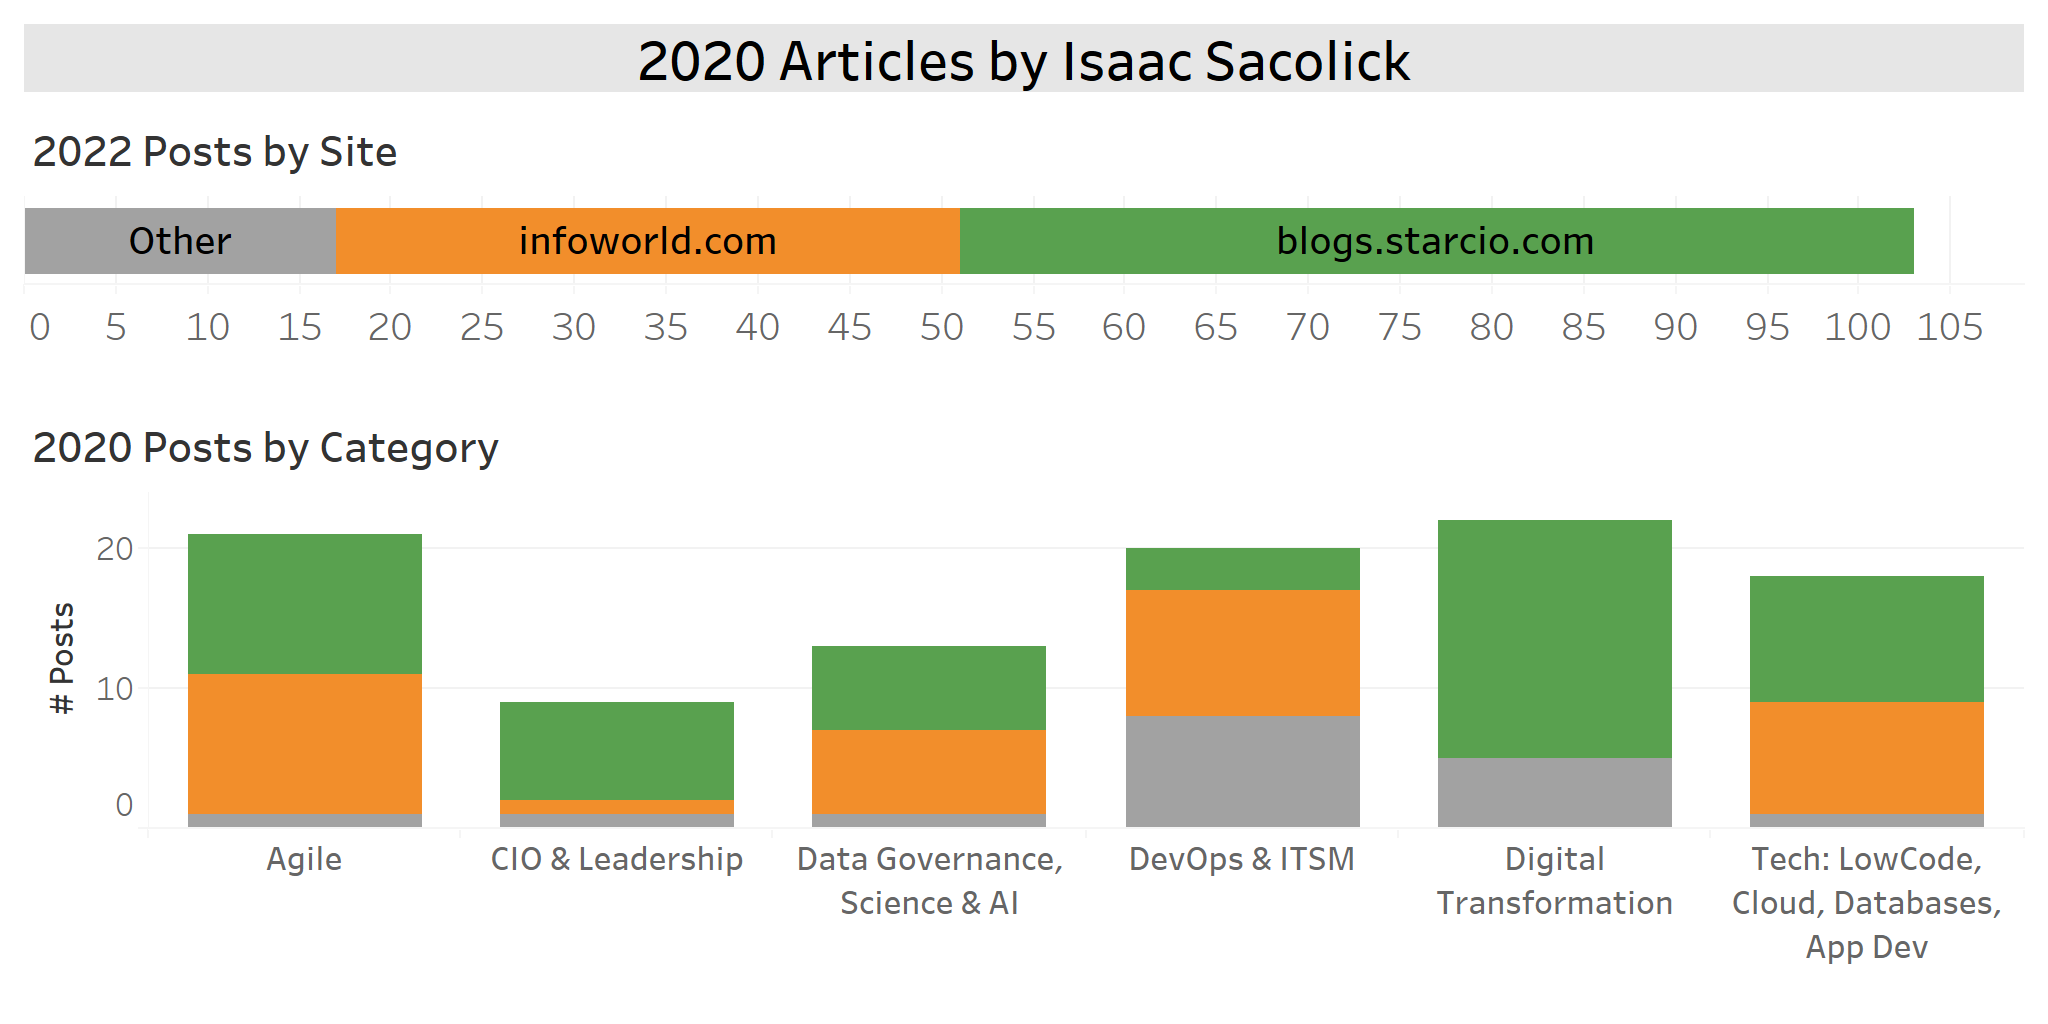 2020 Articles by Isaac Sacolick in Agile, CIO, DevOps, ITSM, Digital Transformation, LowCode, Data Science, Data Governance, AI